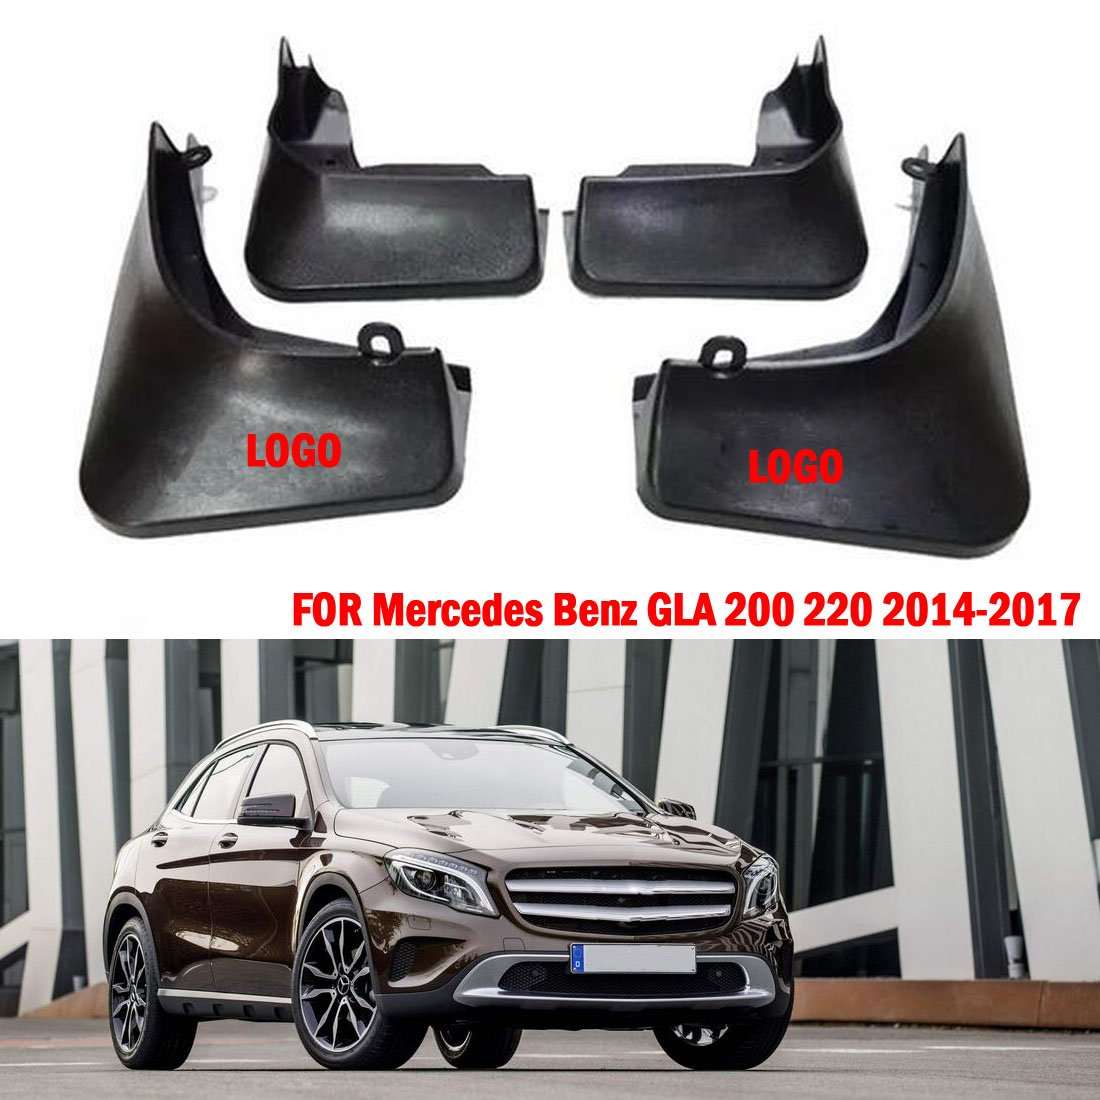 Guardabarros para Guardabarros de Coche con Solapas para Guardabarros para GLA 200 220 X156 2014-2017: Amazon.es: Coche y moto